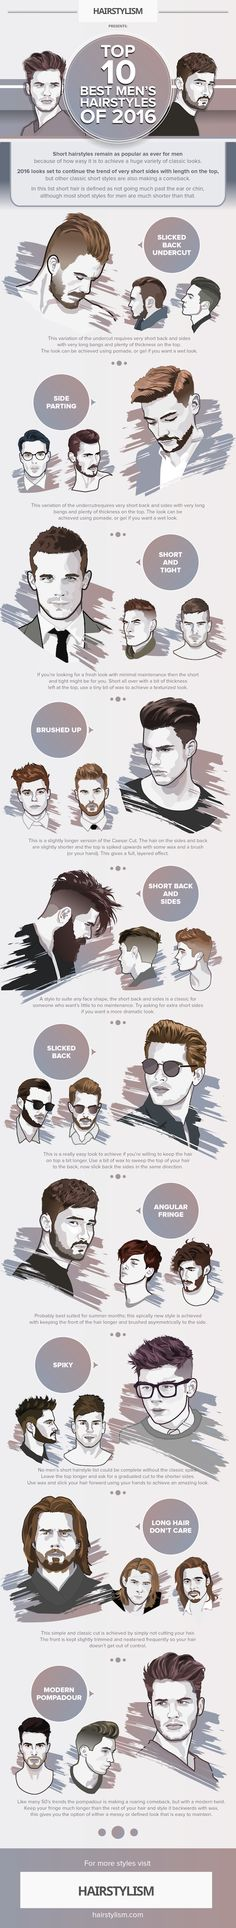 Infographic: Top 10 Men's Hairstyle Trends Of 2016 - DesignTAXI.com